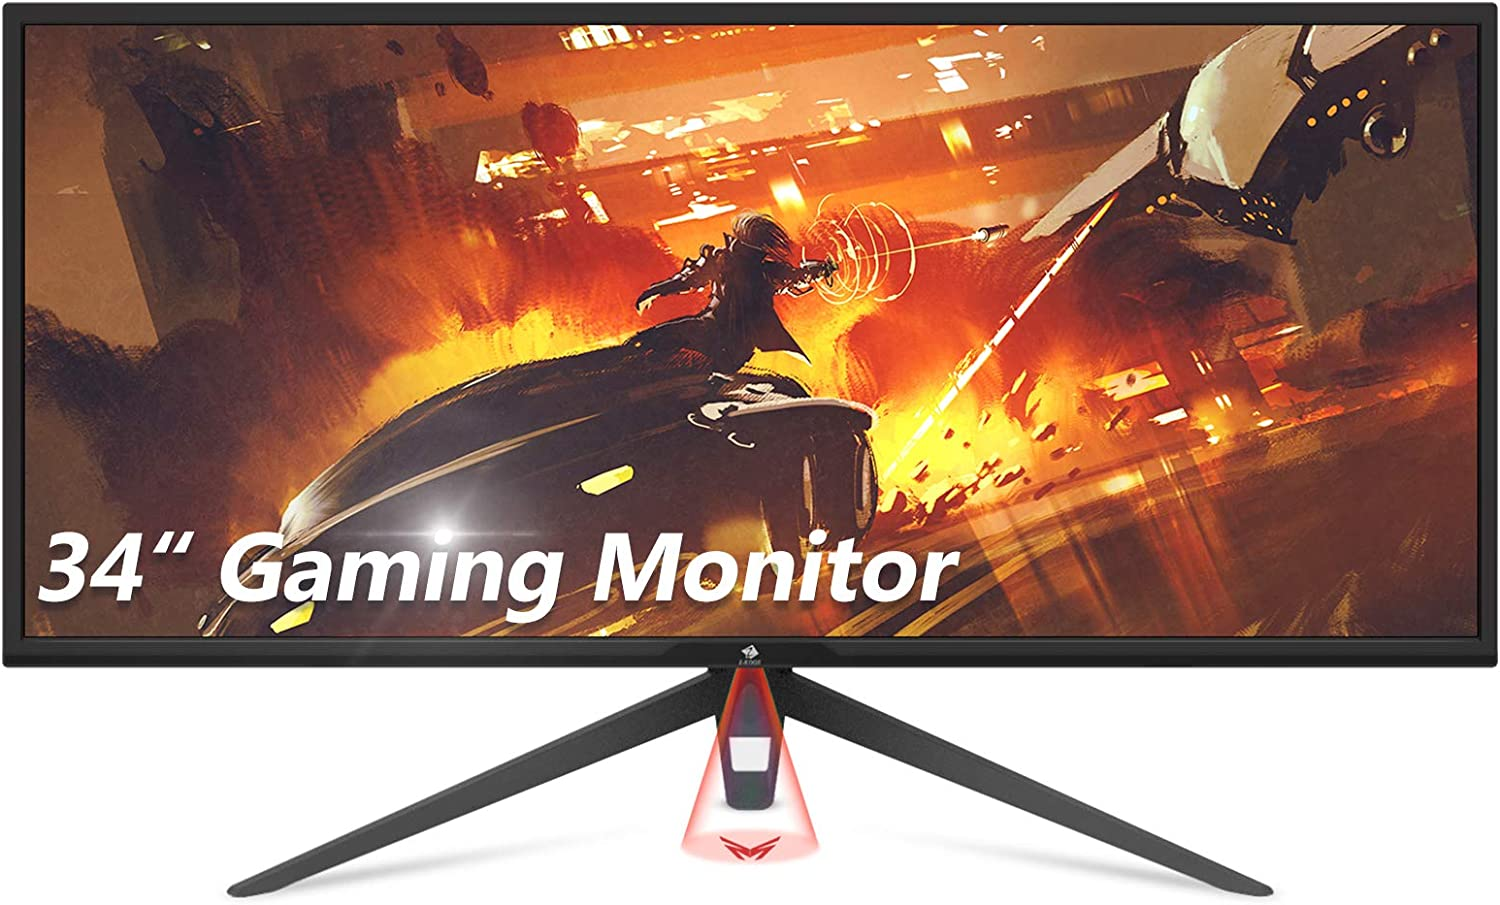 Z-Edge 34 inch Gaming Monitor, 100Hz Refresh Rate / 1ms Response Time, Frameless Ultrawide Monitor, 3440 x 1440 Display, 21:9 Aspect Ratio, AMD FreeSync Technology (Display Port & 2 x HDMI Ports)